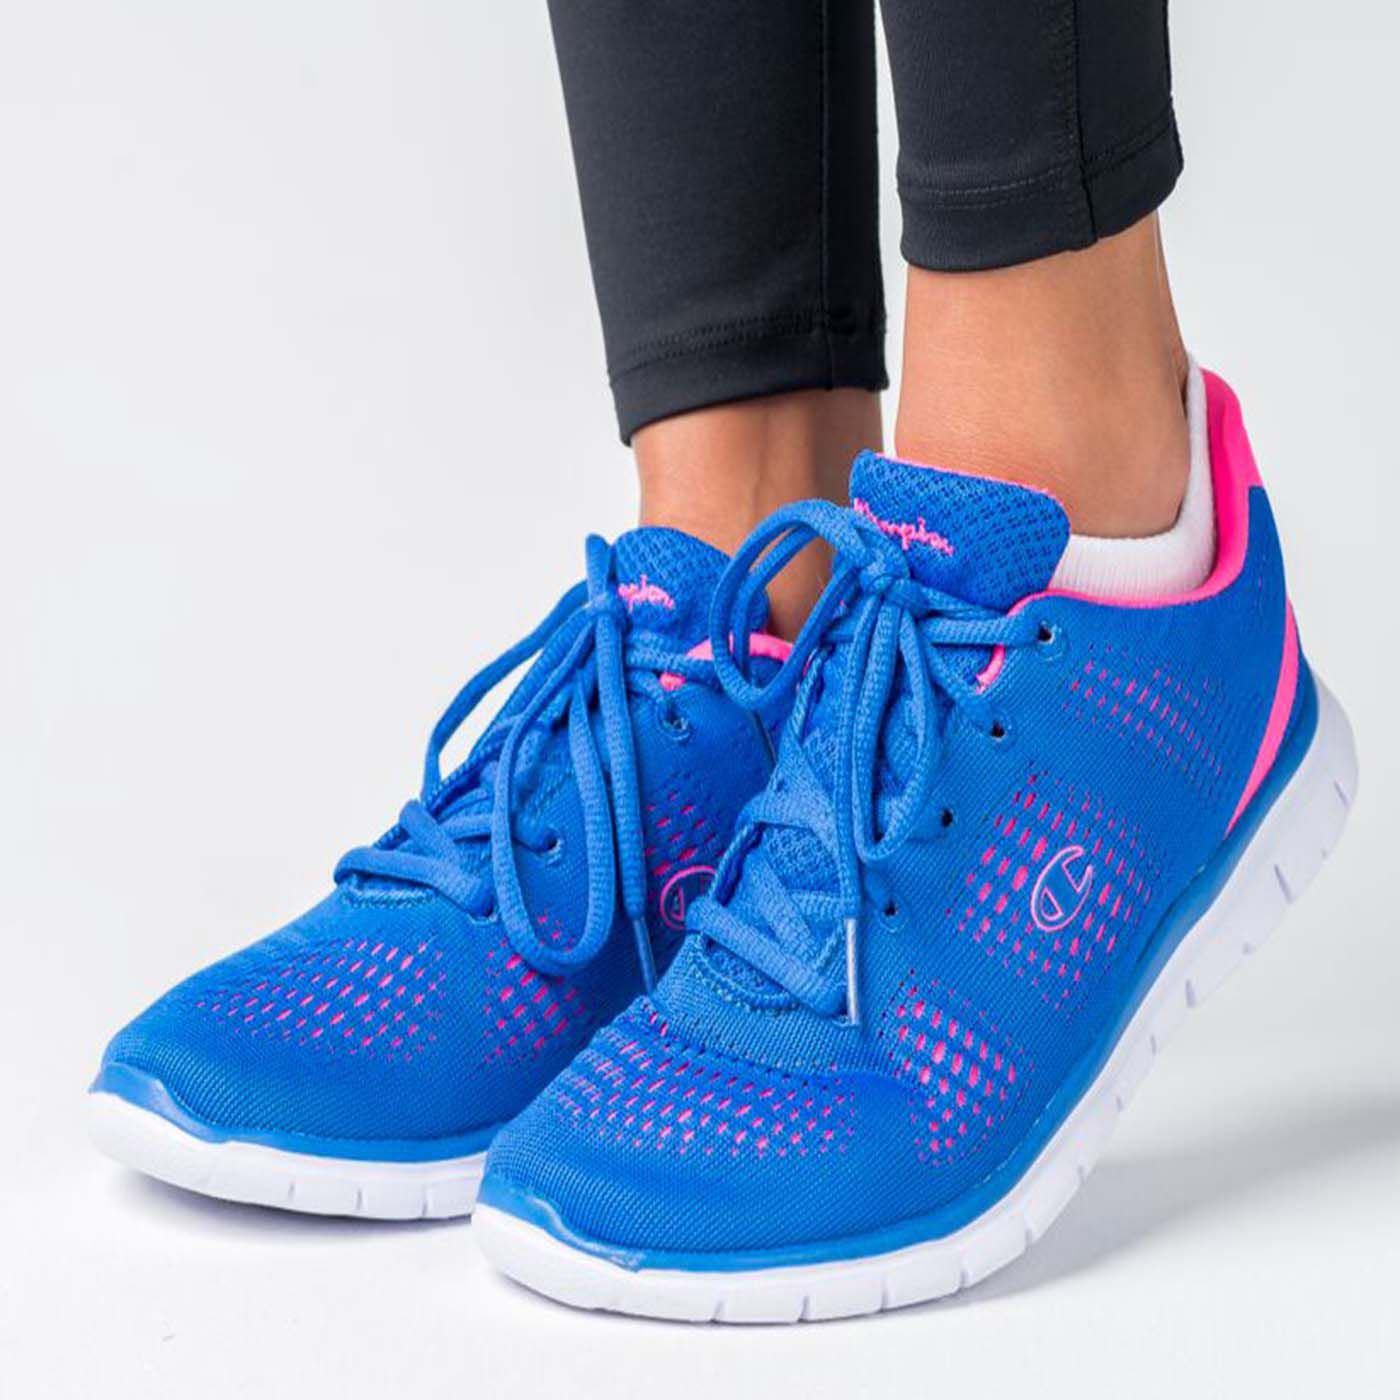 aec3f1e1afb Womens Lightweight Gusto Runner